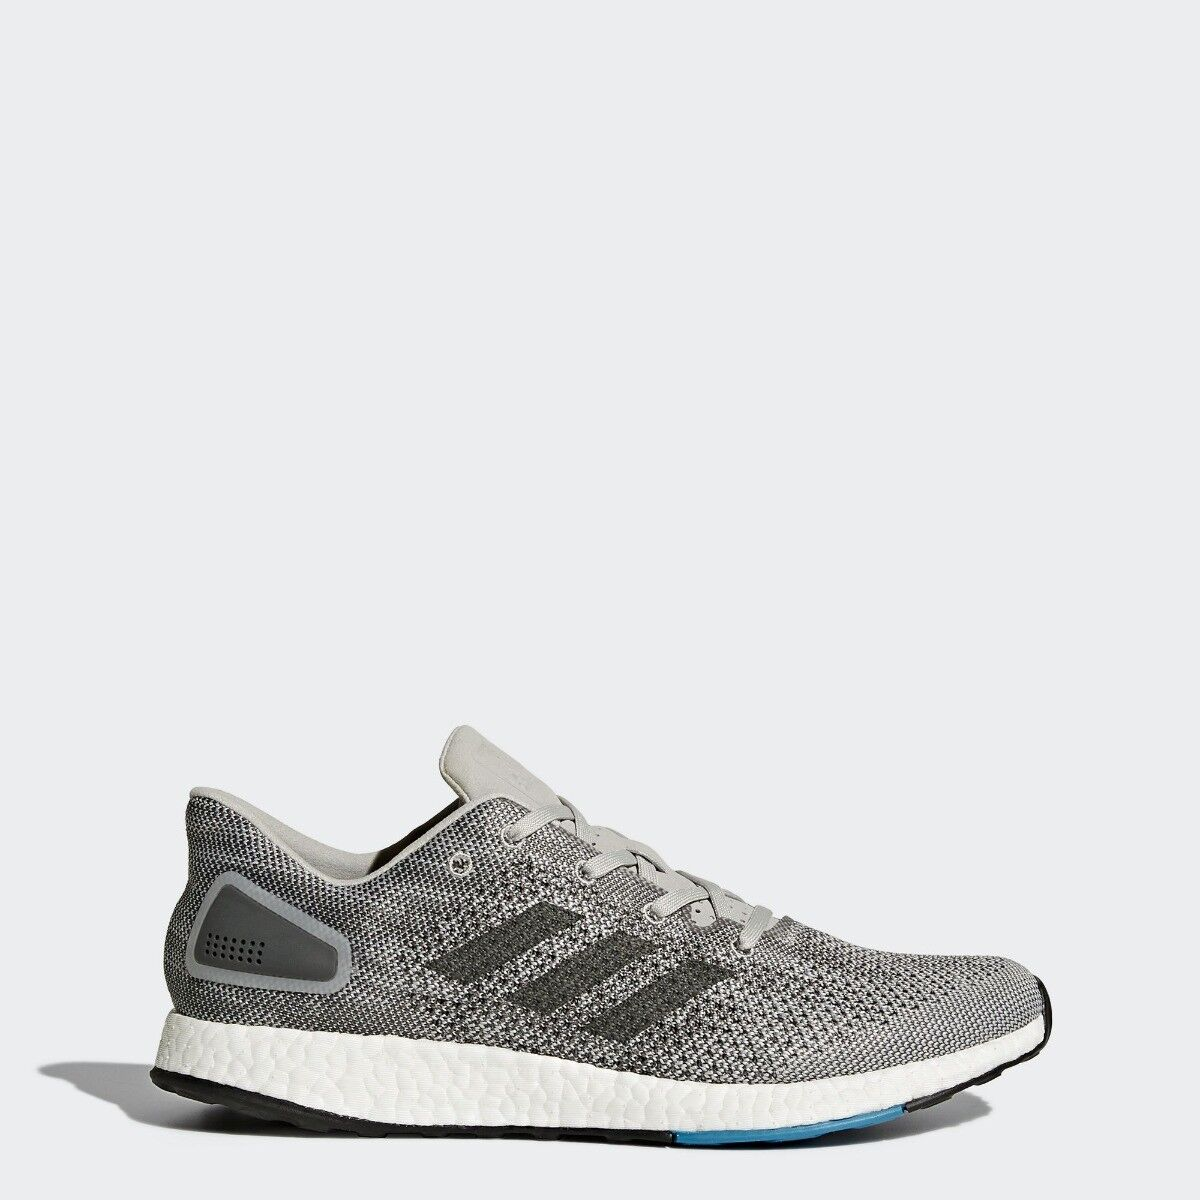 Adidas PureBoost Mens Running Trainer shoes Size 6.5-10.5 Greys   -